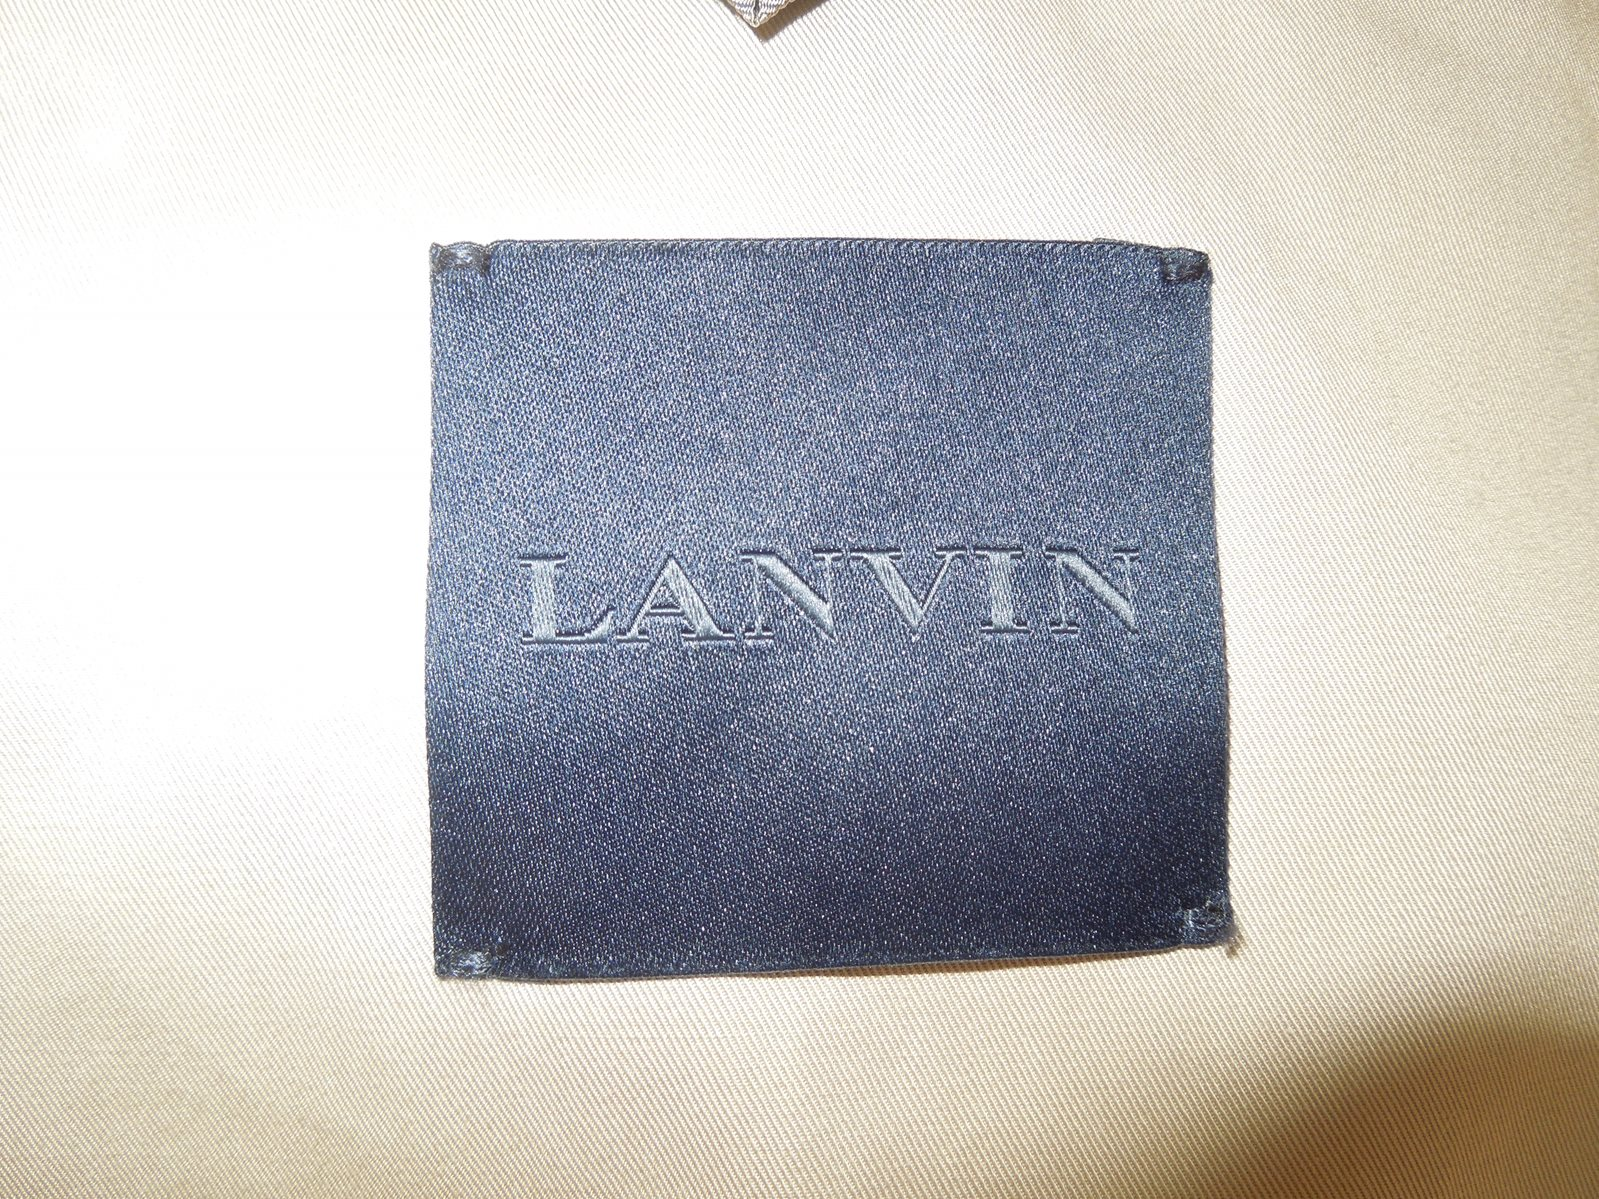 Lanvin - The Loft, London